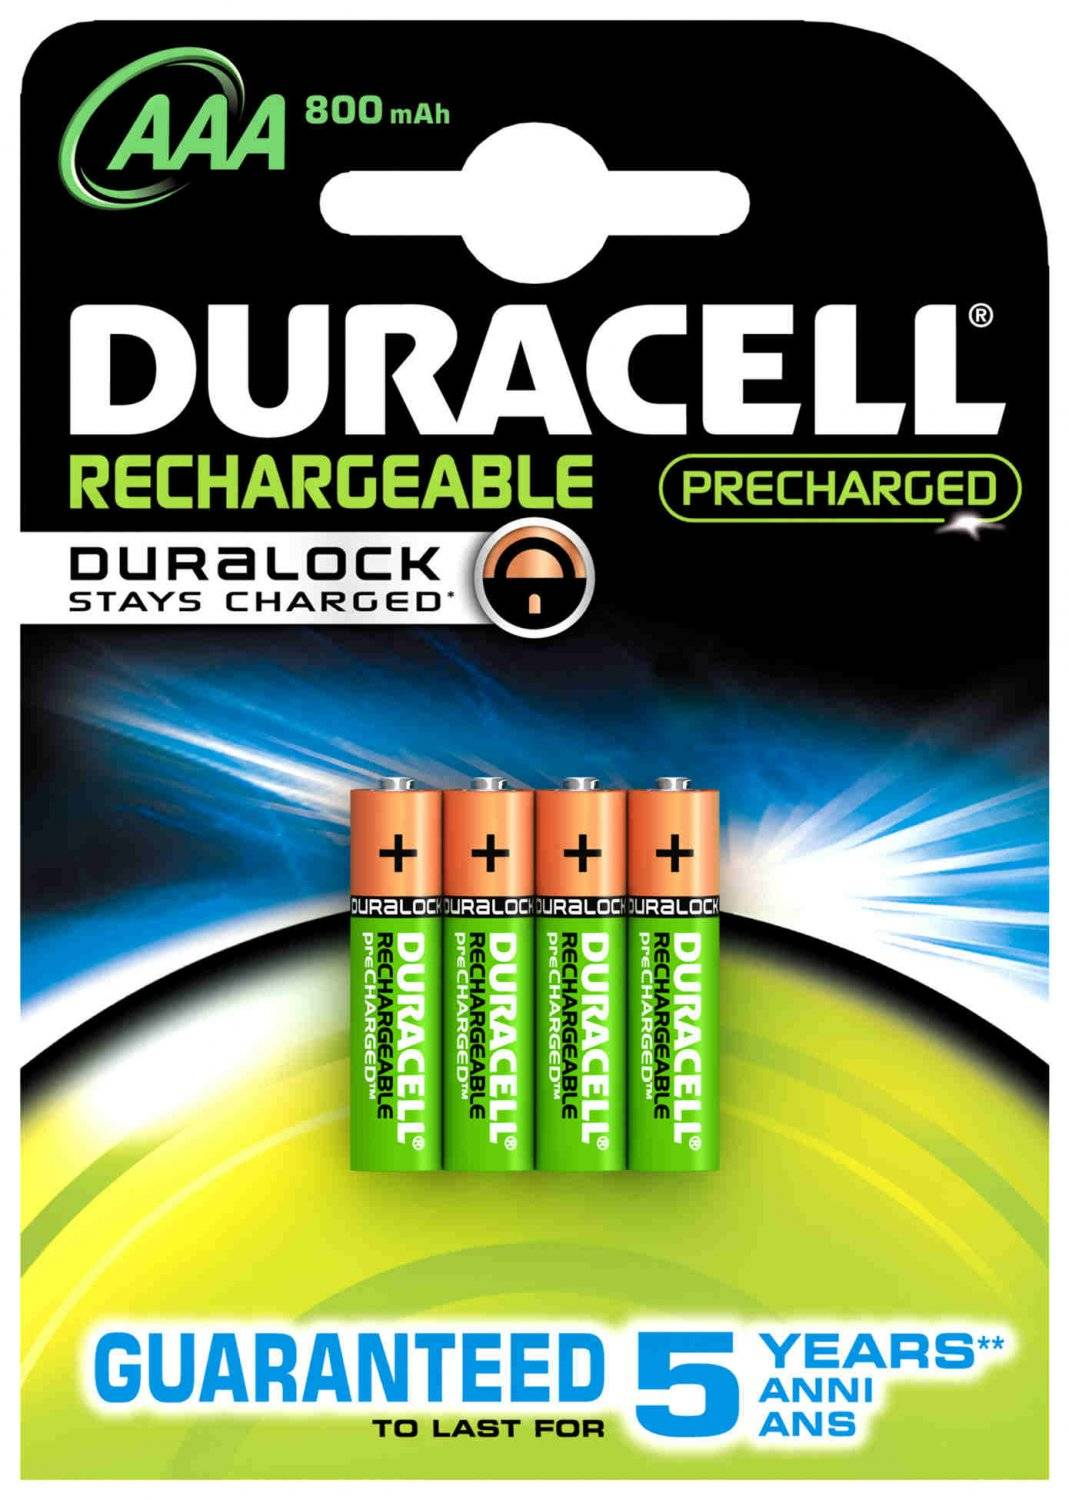 Duracell Rechargeable 800mah Hr03 Aaa (Lr03), 4-Pack